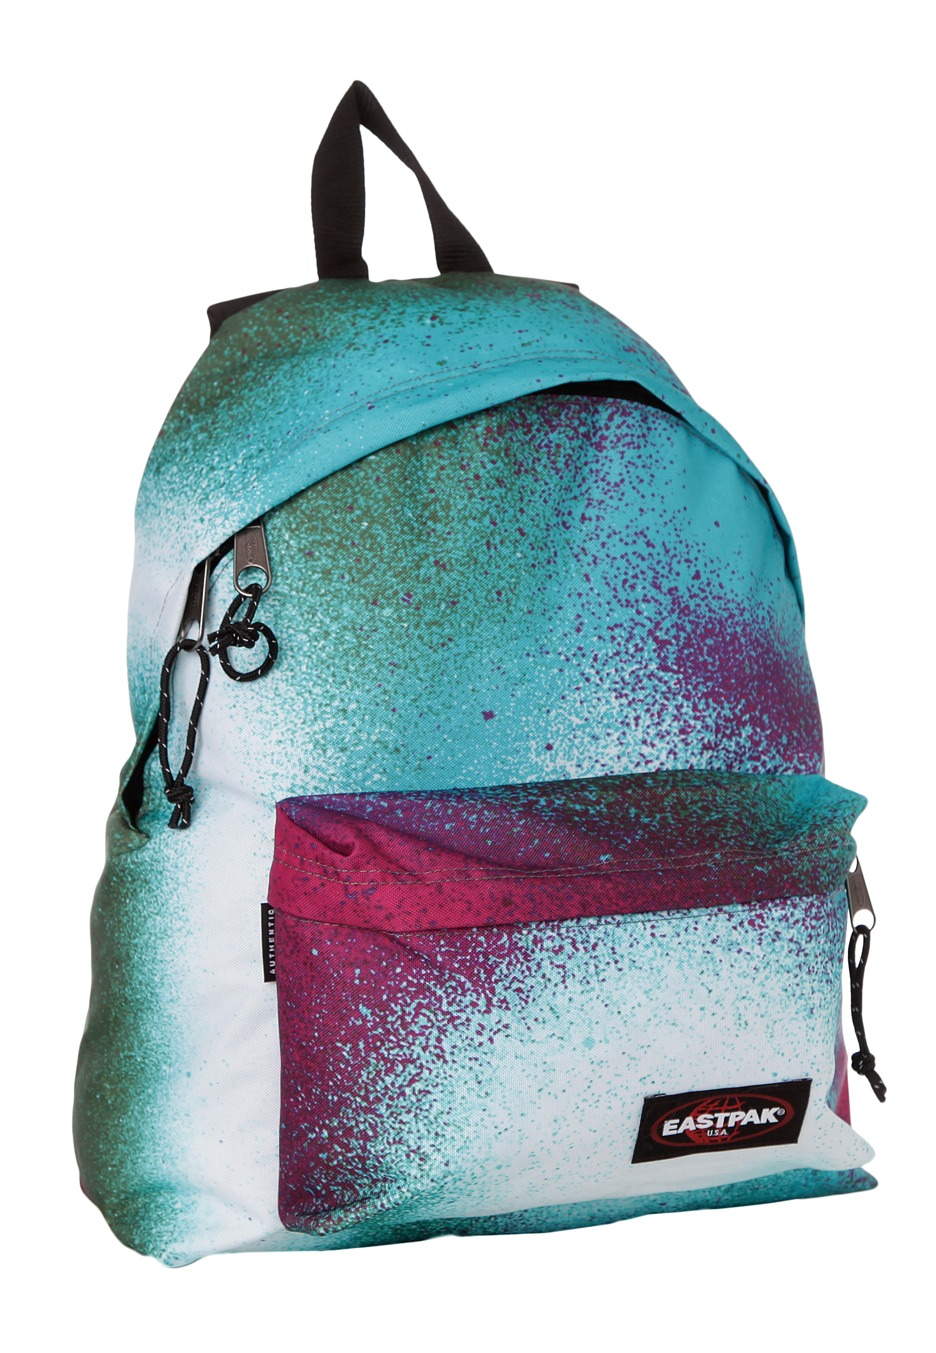 eastpak padded pak r bright drizzle sac a dos fr. Black Bedroom Furniture Sets. Home Design Ideas